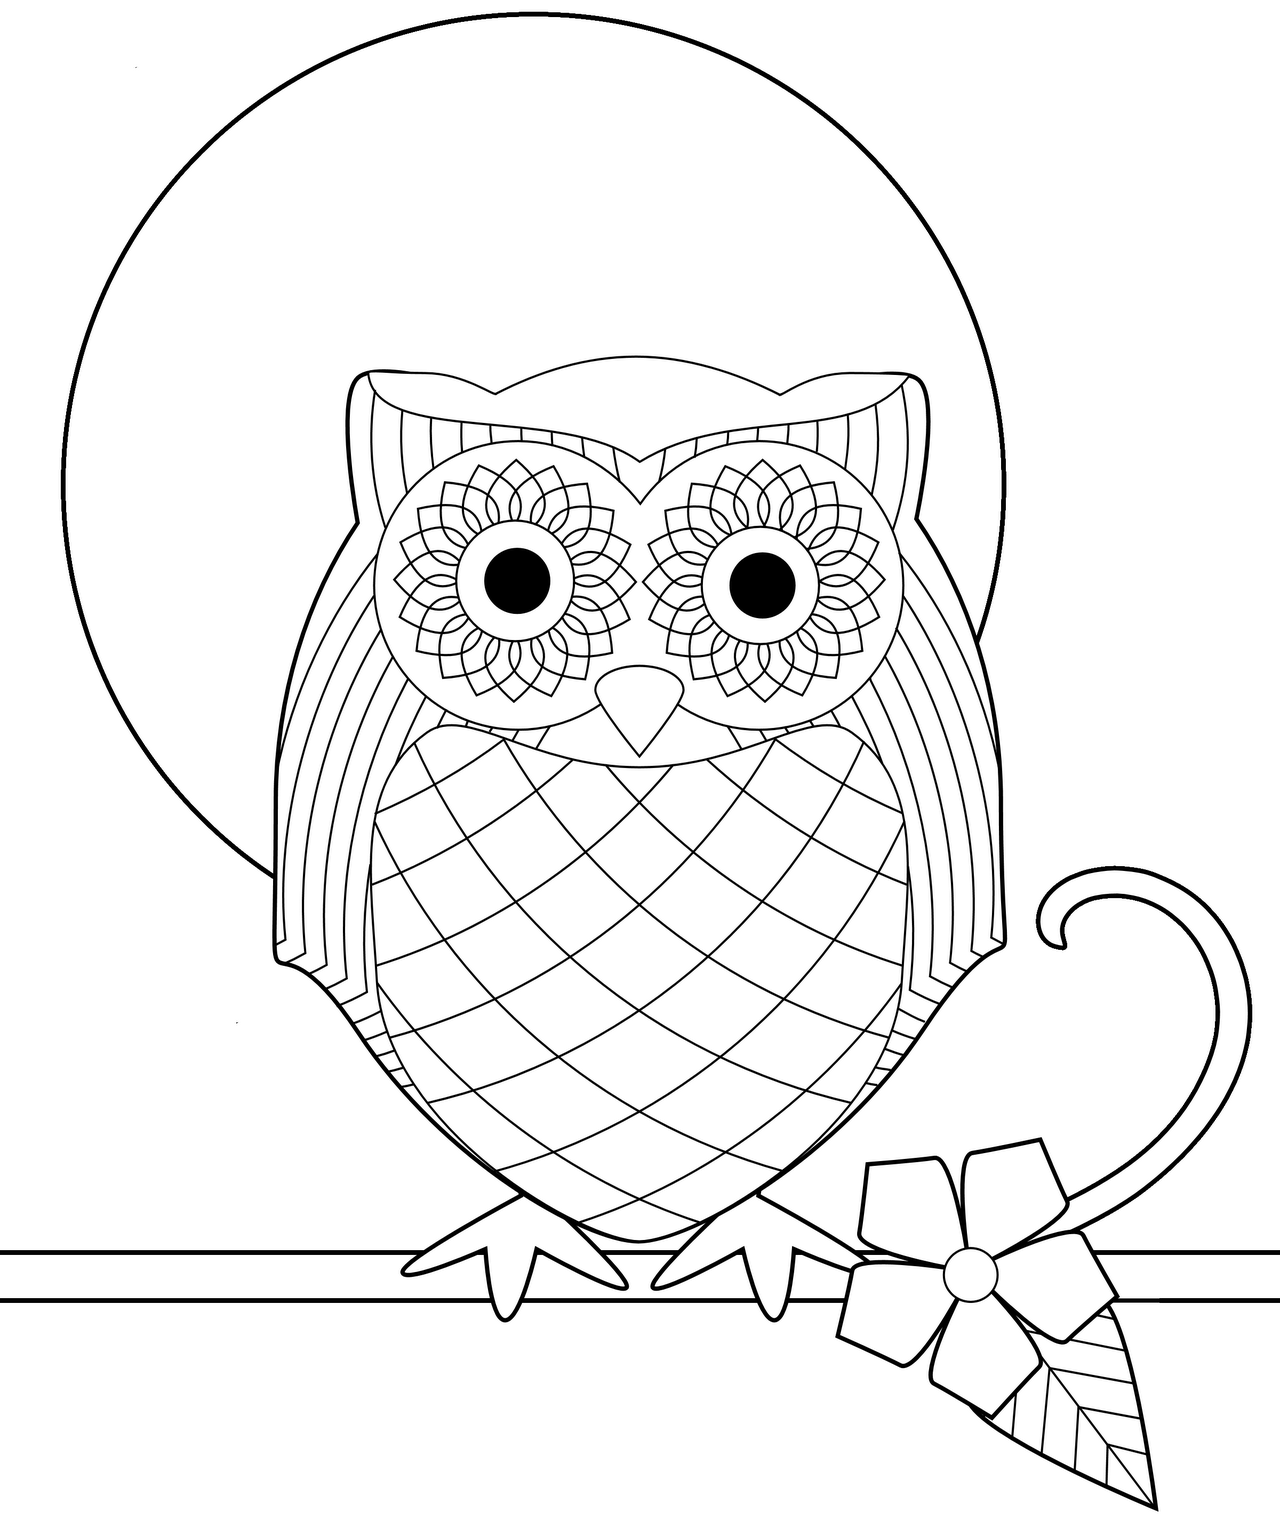 owl-coloring-page-0004-q1